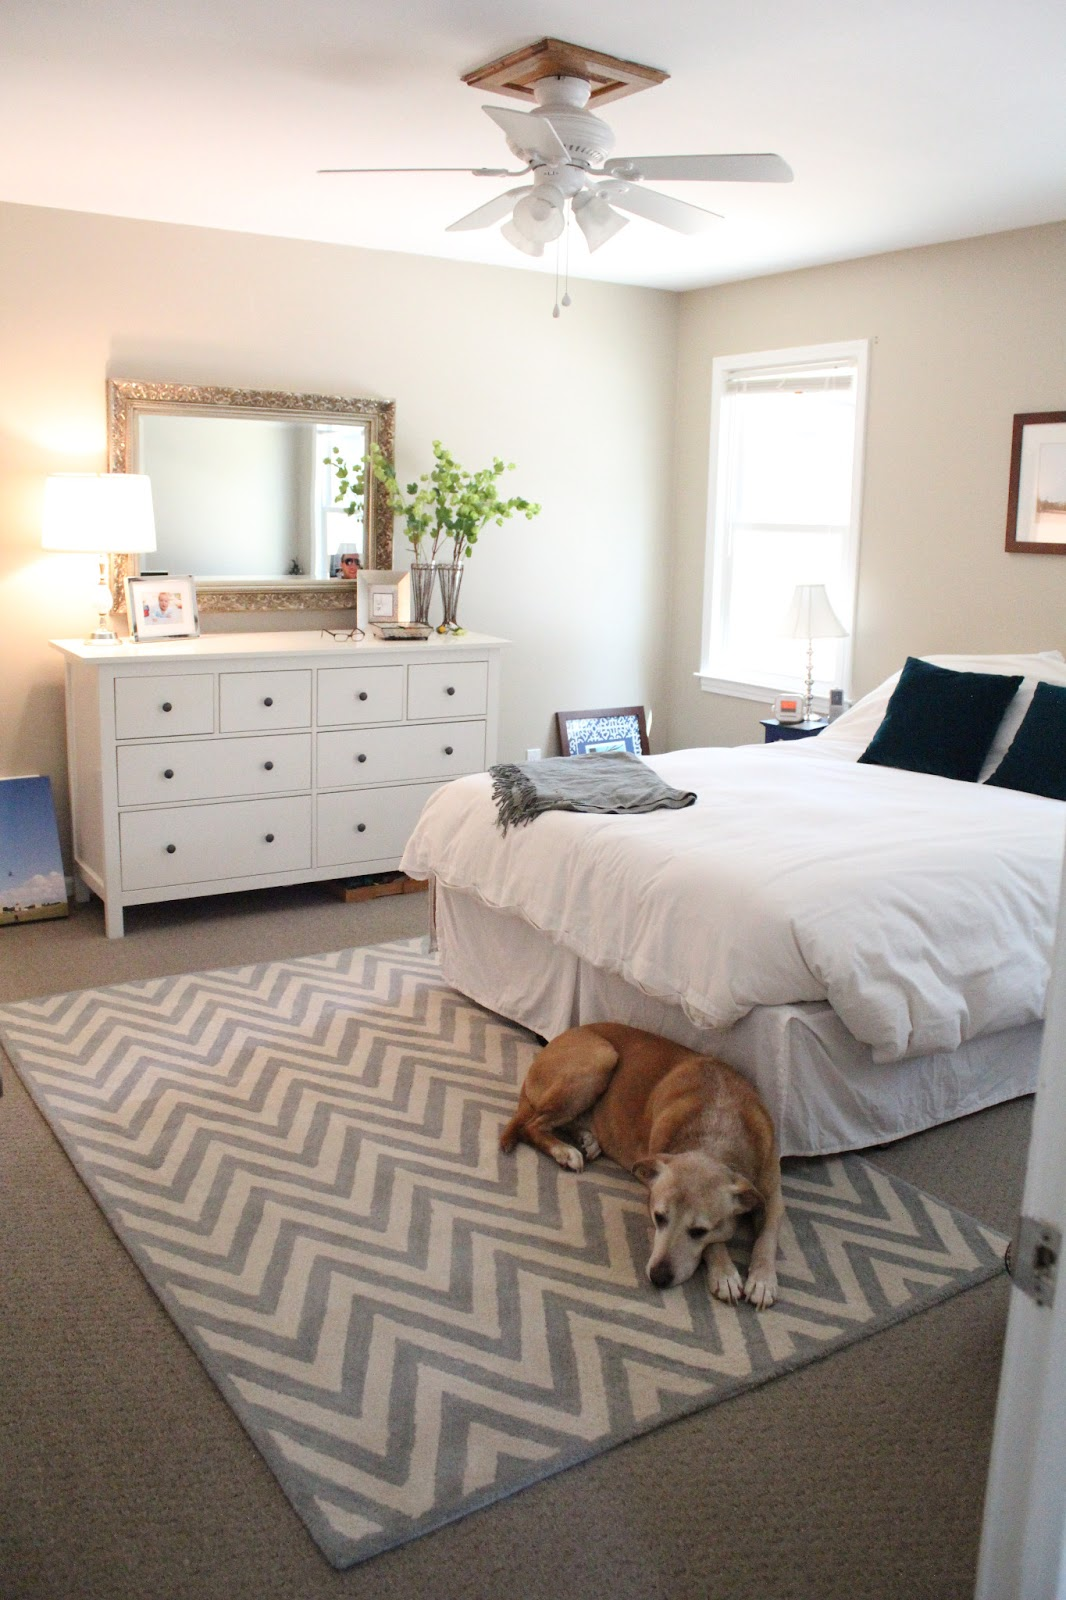 Ten june our rental house a master bedroom tour for Small and simple bedroom design